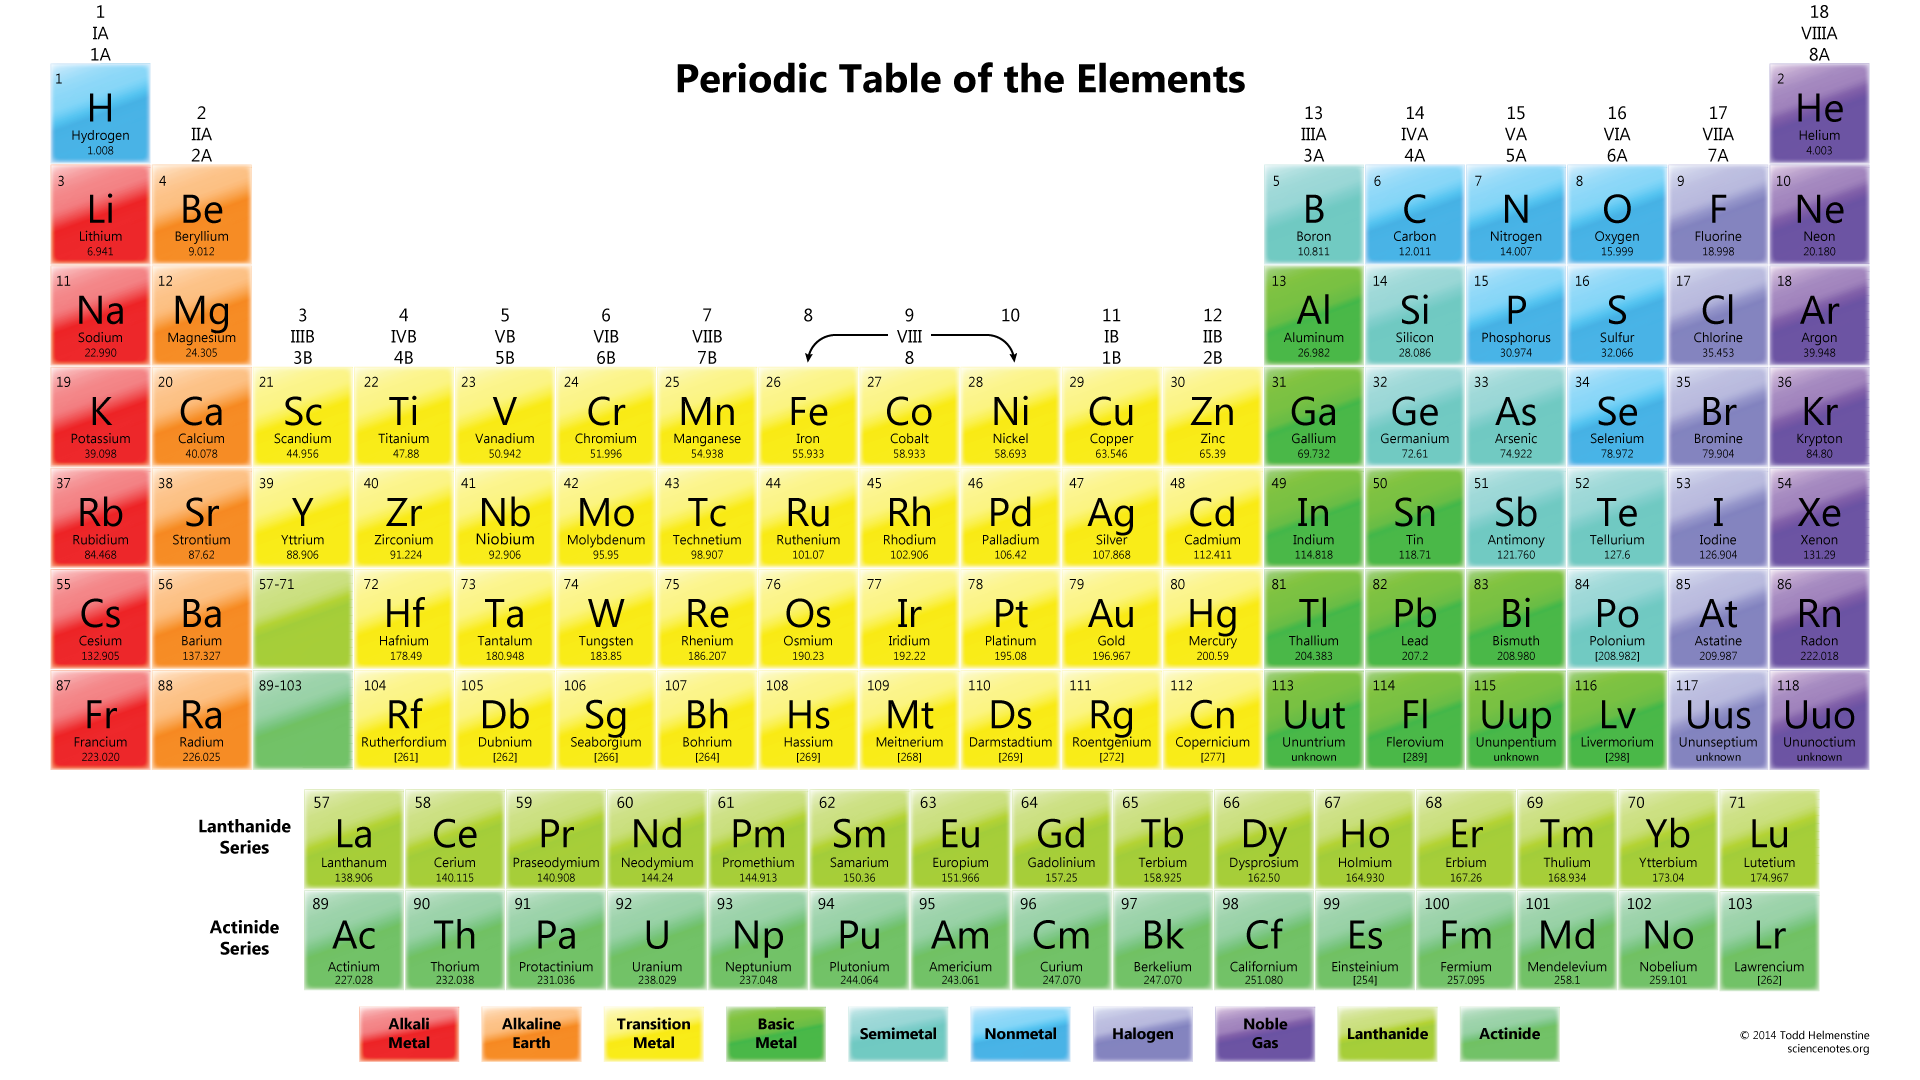 http://sciencenotes.org/colorful-periodic-table-wallpaper/